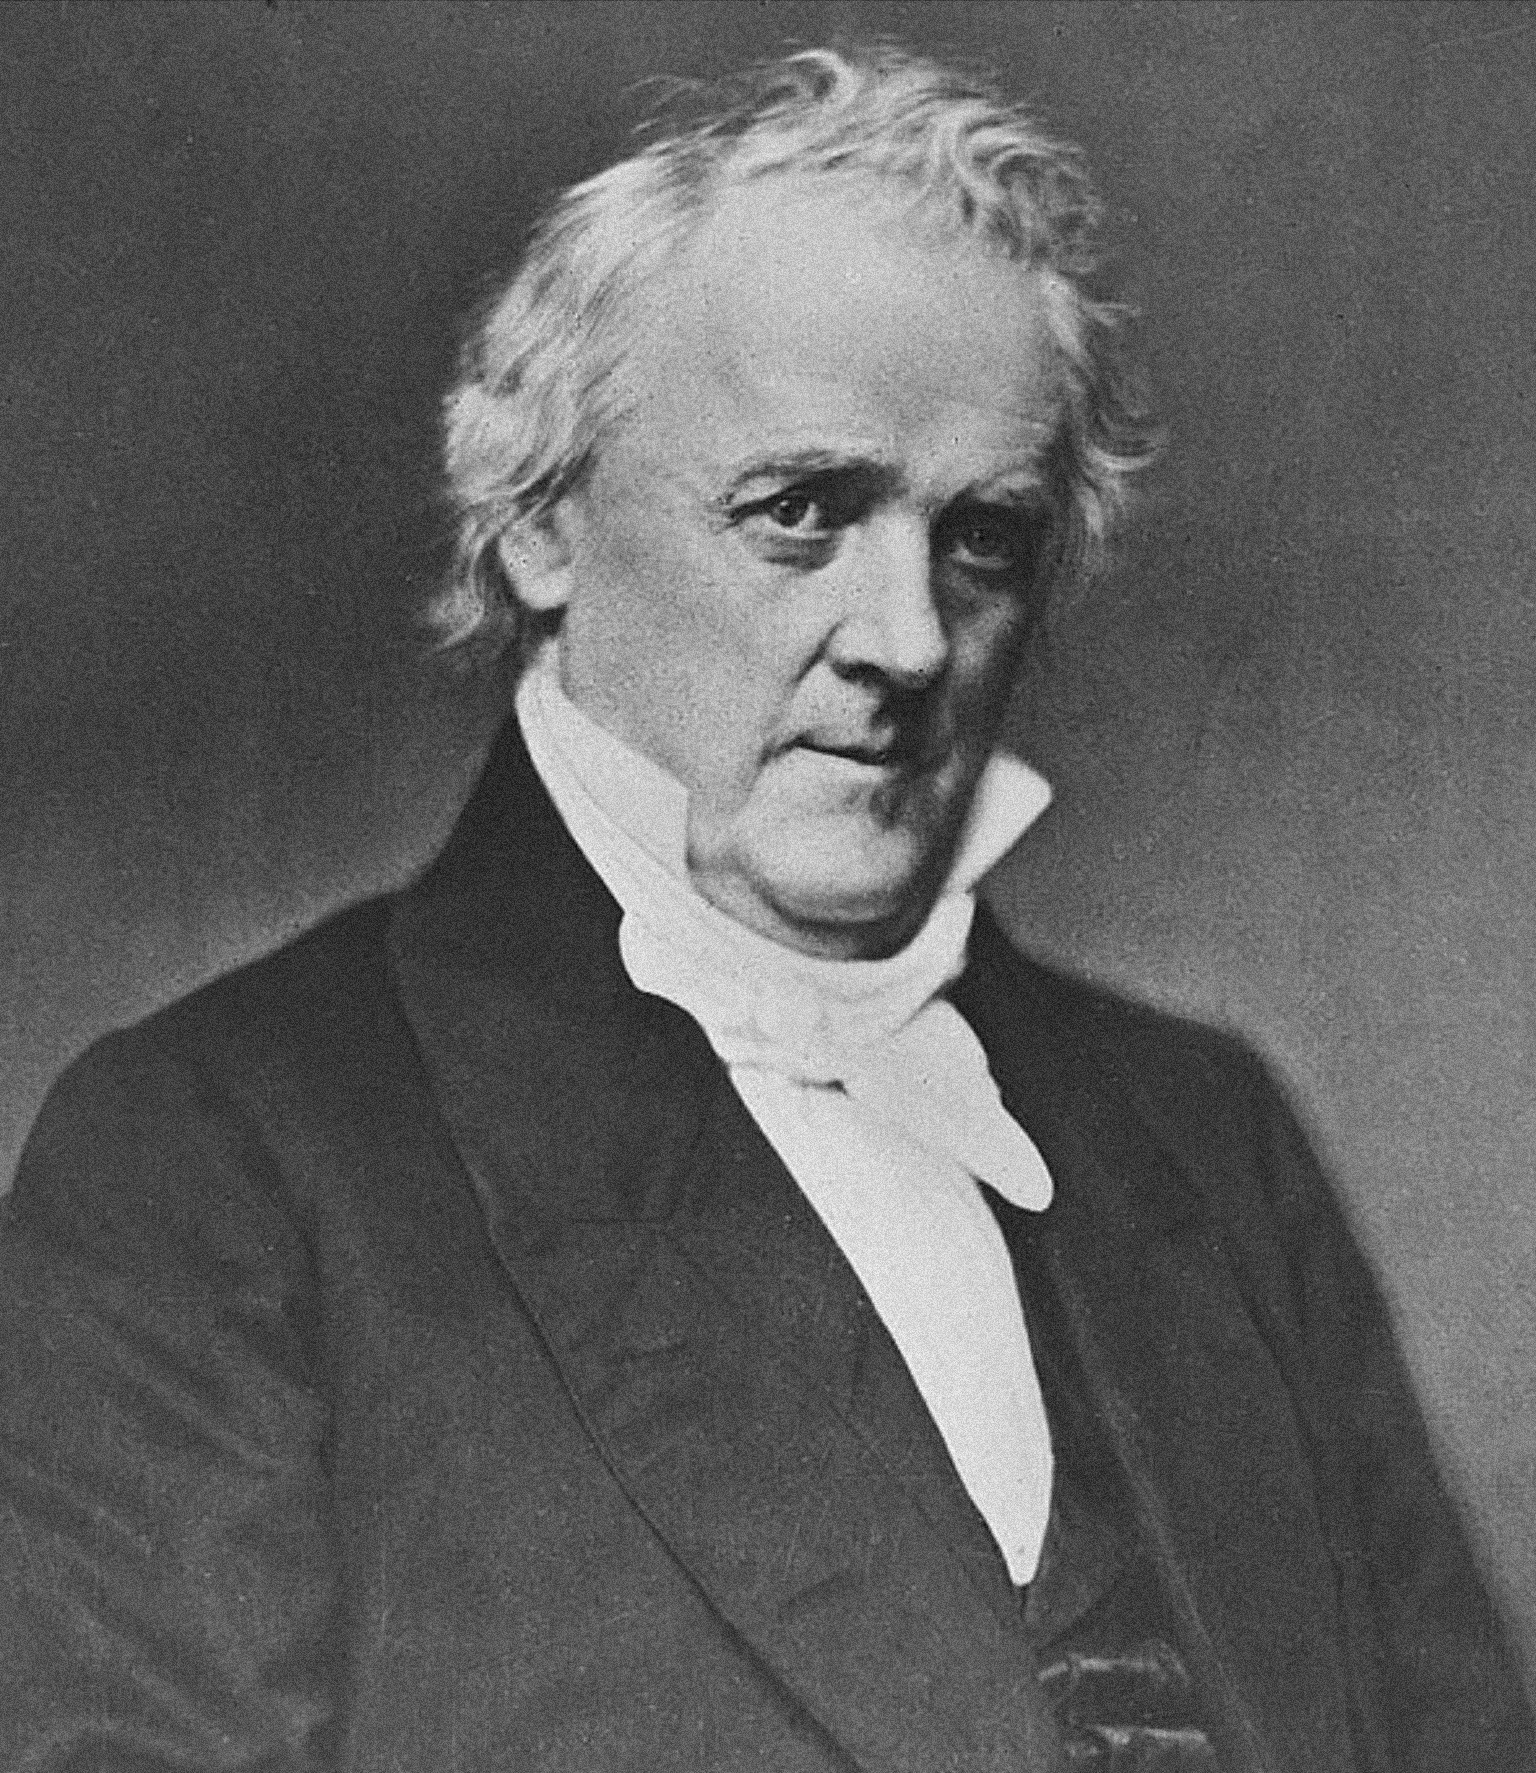 James_Buchanan.jpg